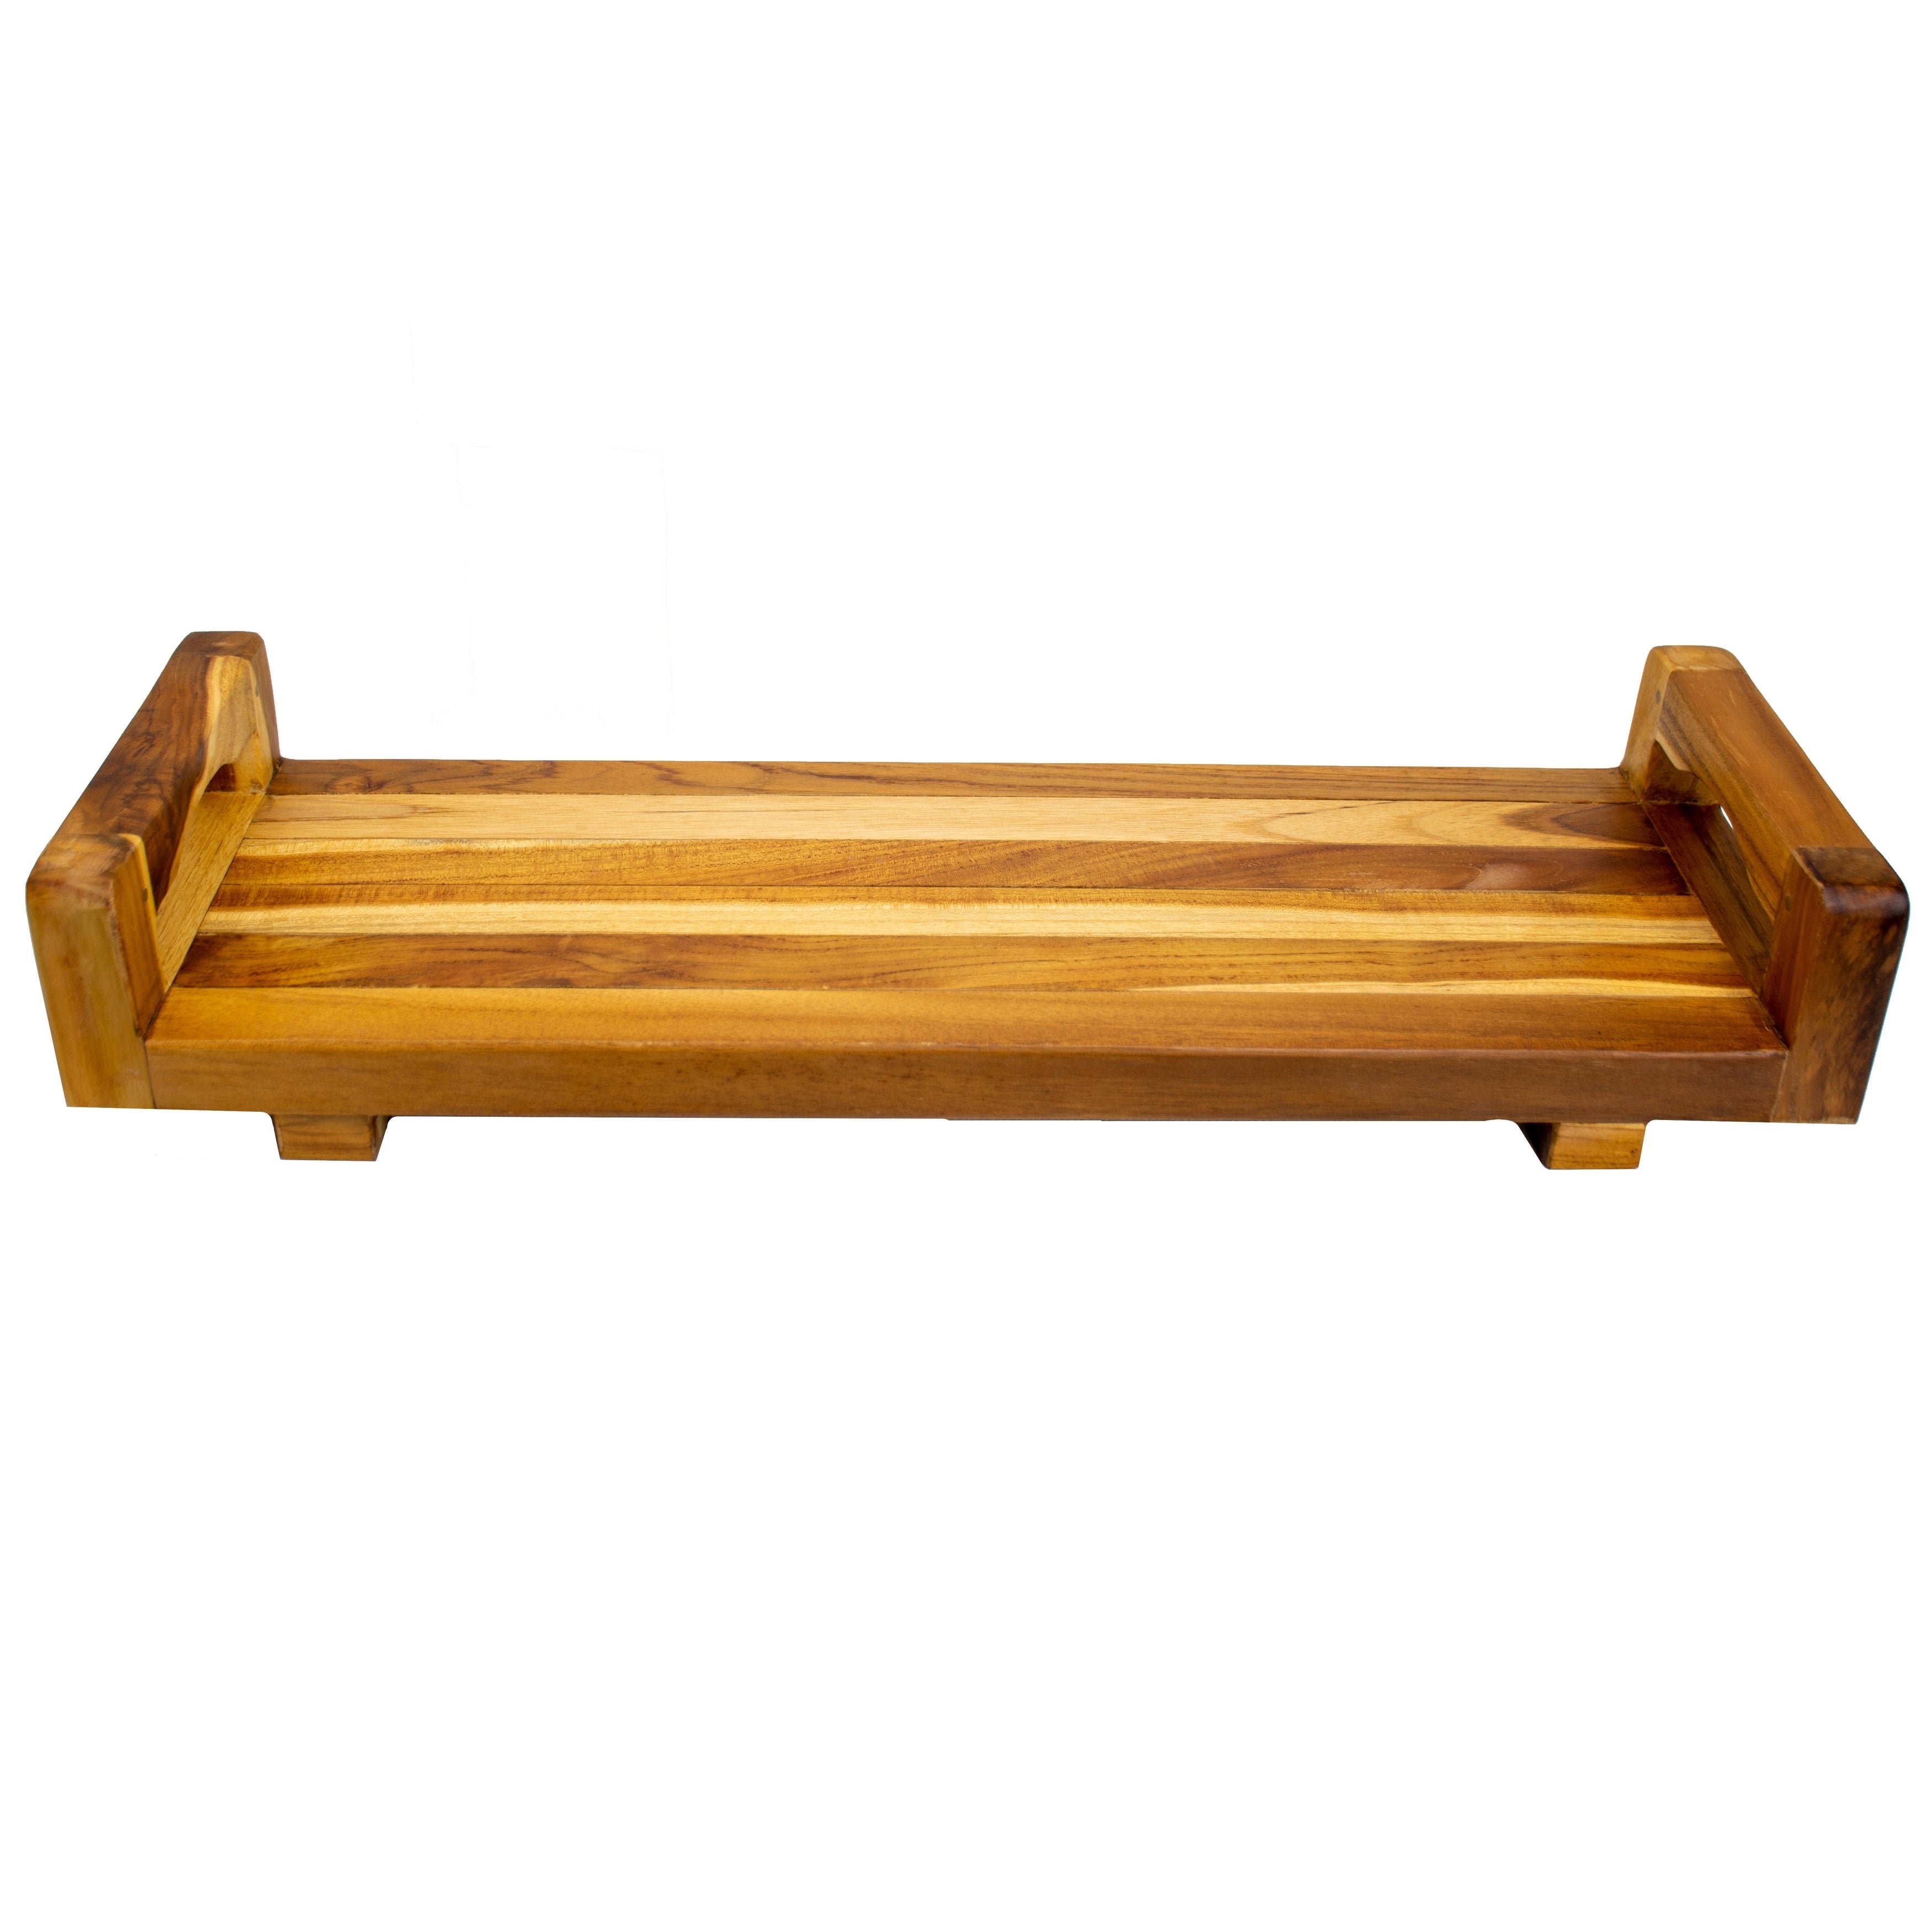 Ecodecors Solid Teak Eleganto Bathtub Seat Bench Board And Tray With Liftaide Arms Overstock 29030247